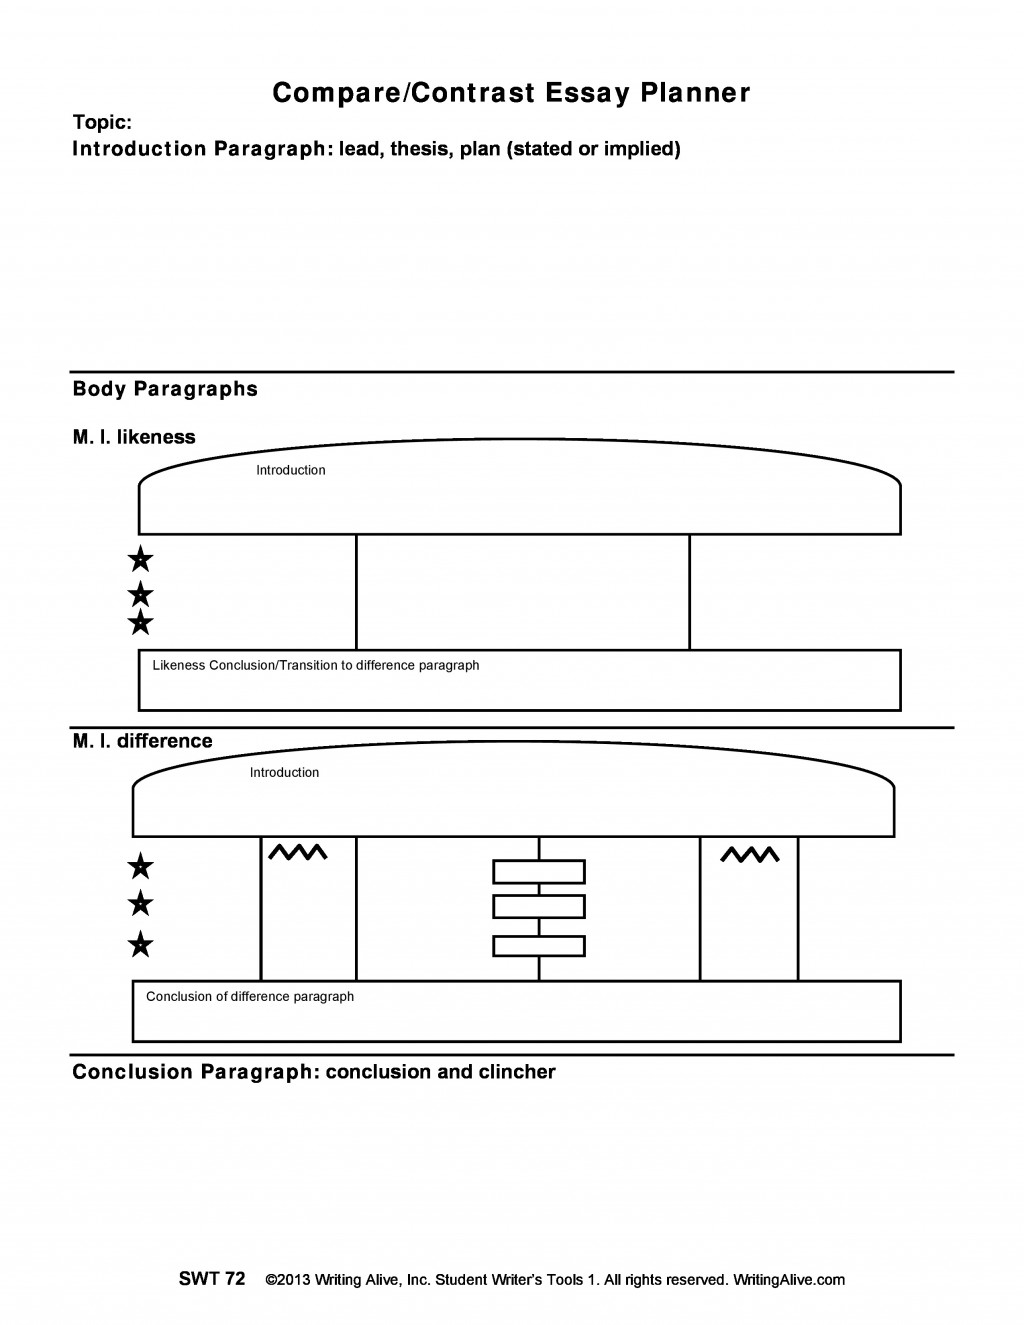 020 Ms1 Swt72 Essay Example Compare And Contrast Stupendous Structure Ppt Format Outline Large